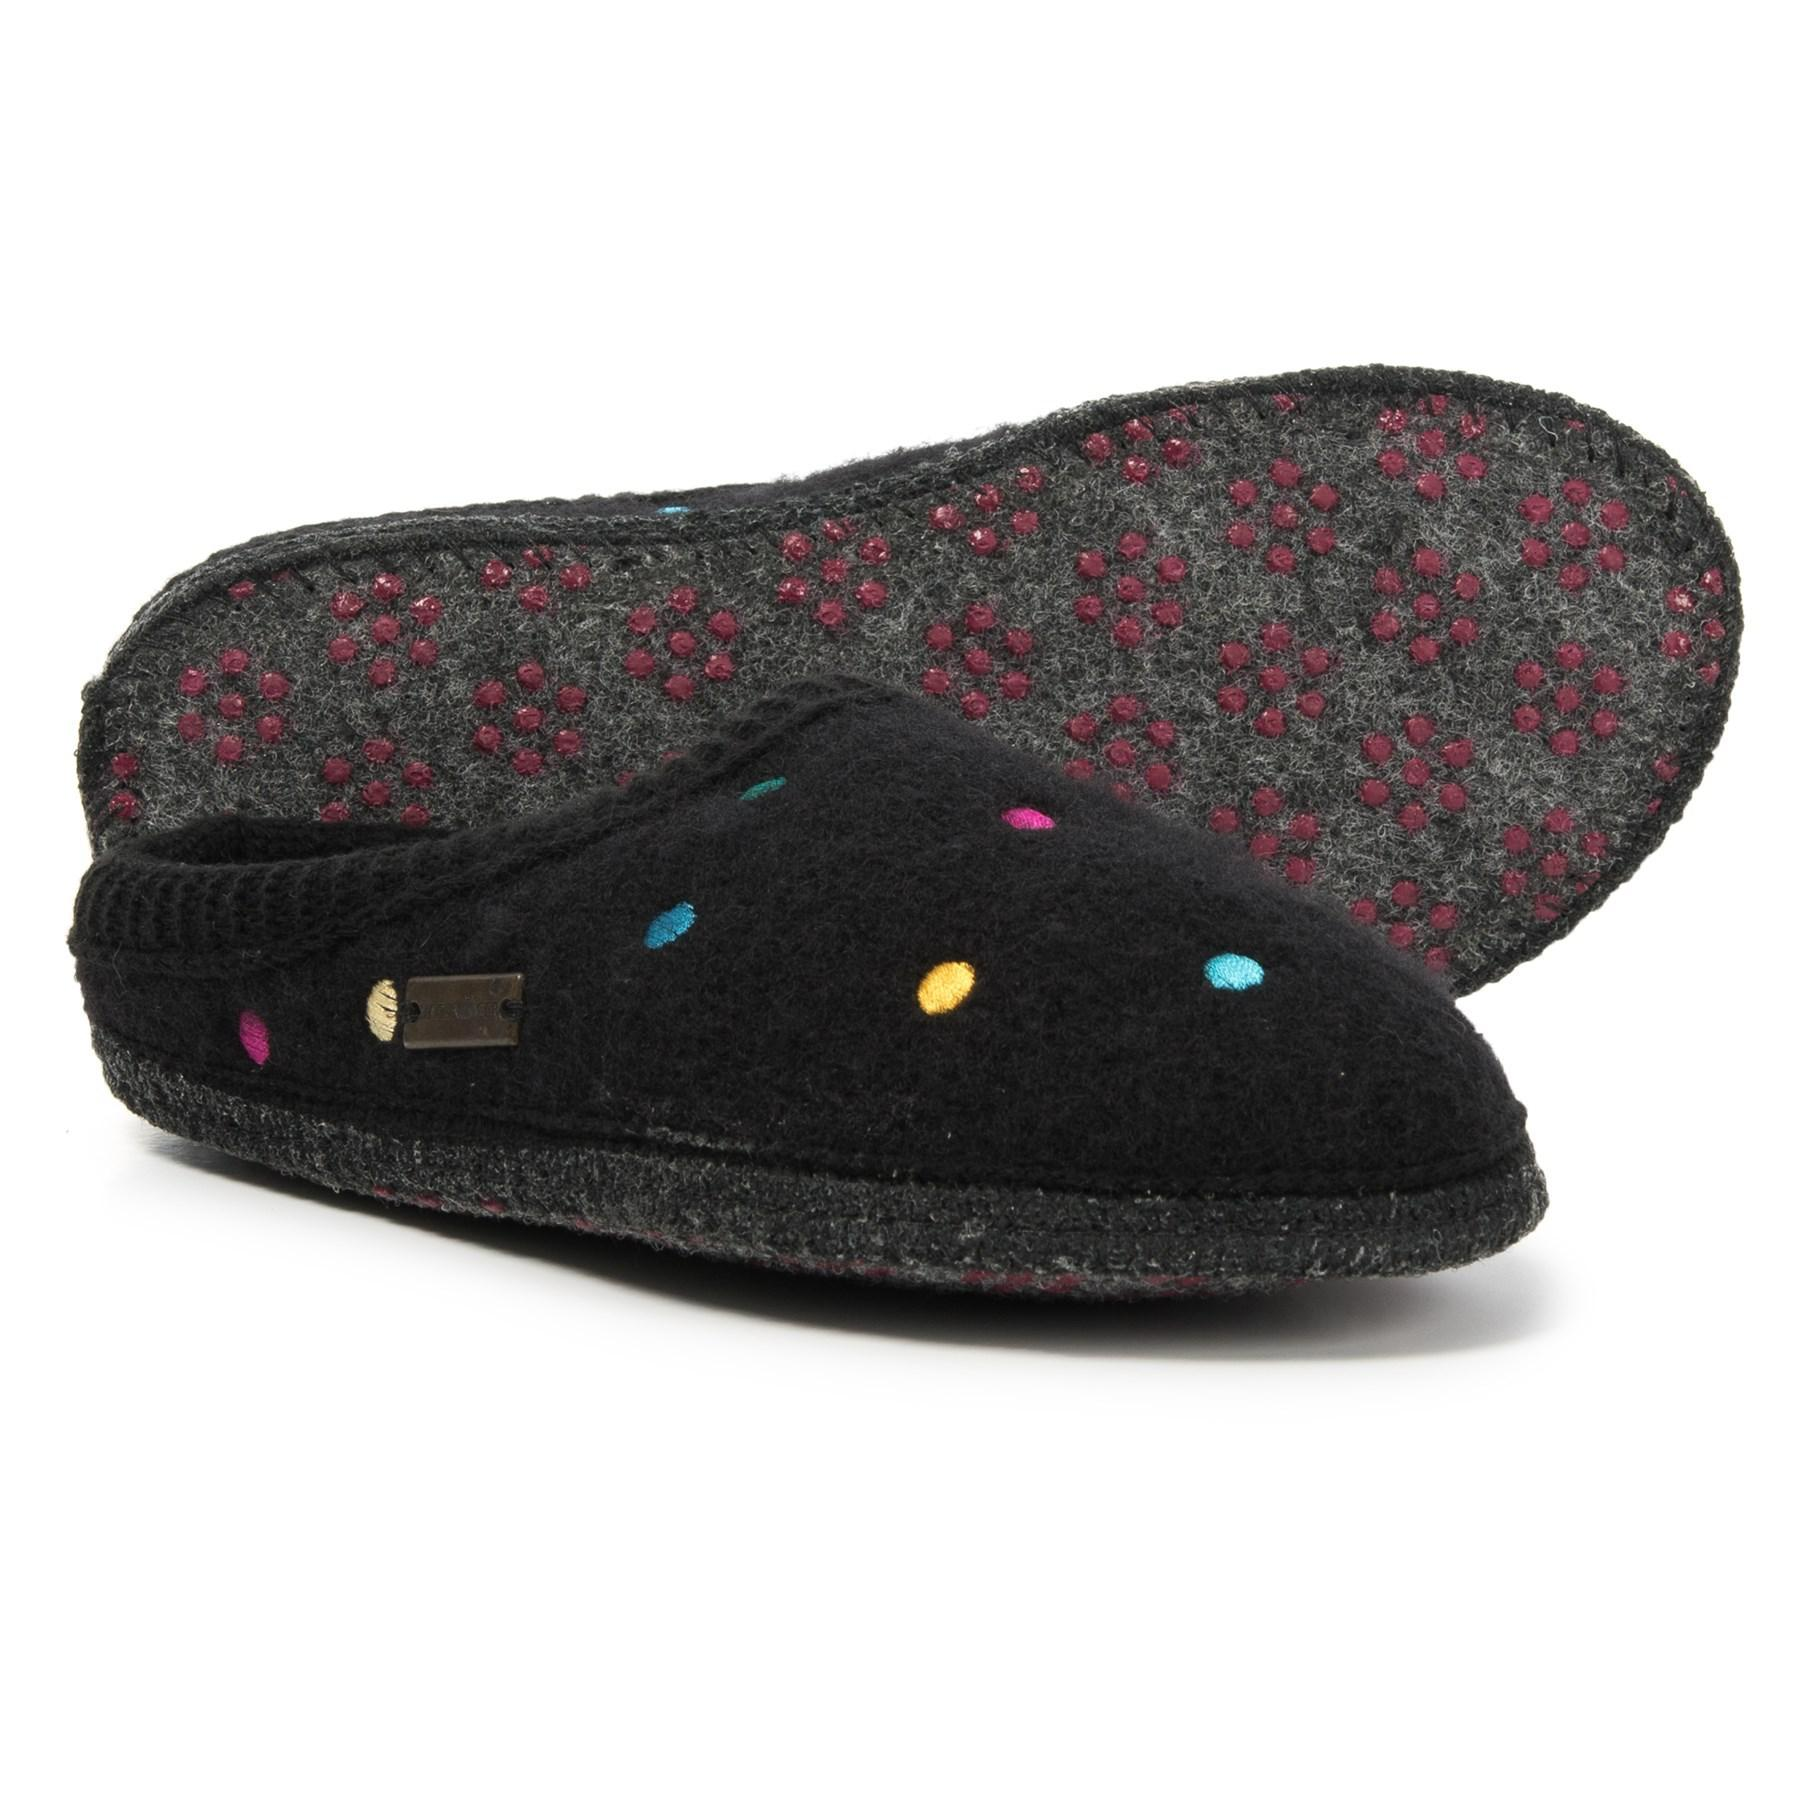 2a107a80f1b Lyst - Haflinger Boiled Wool Classic Scuff Slipper (for Women) in Black